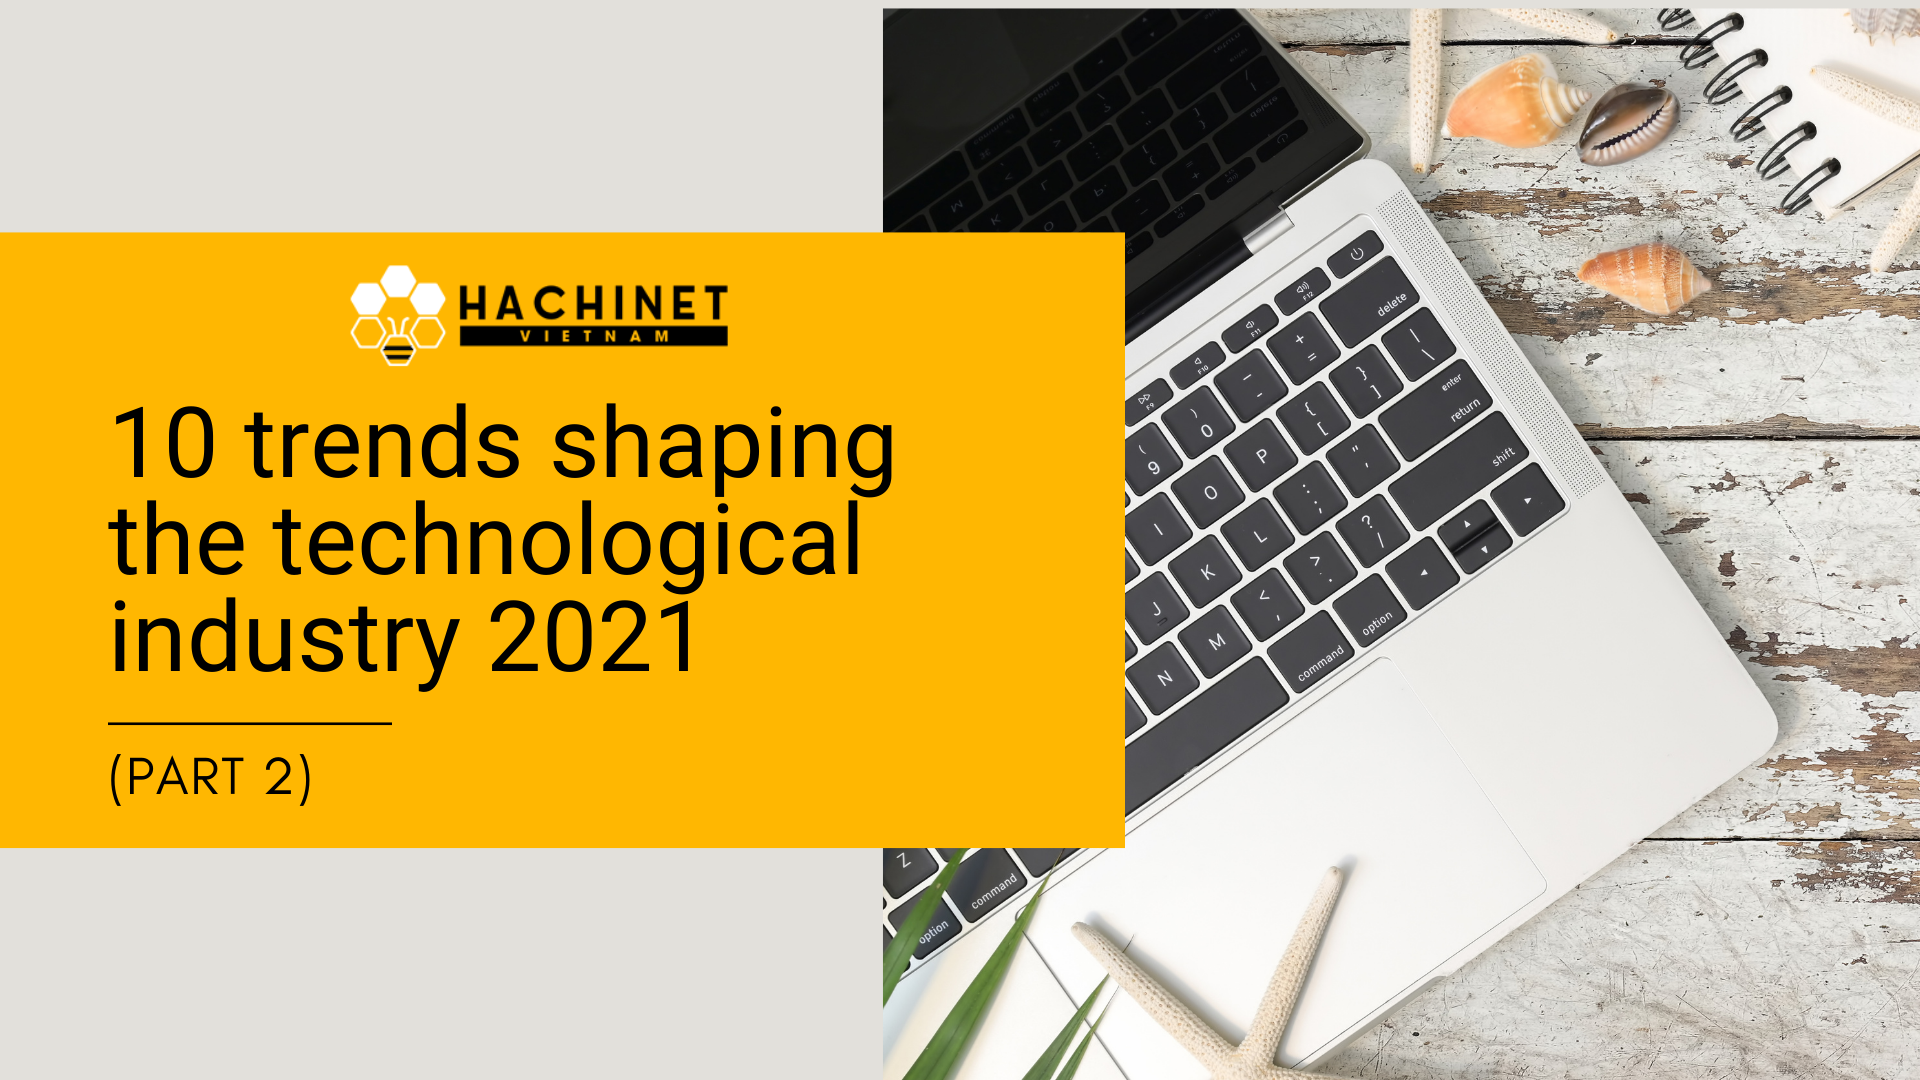 10 trends shaping the technology industry 2021 (part 2)